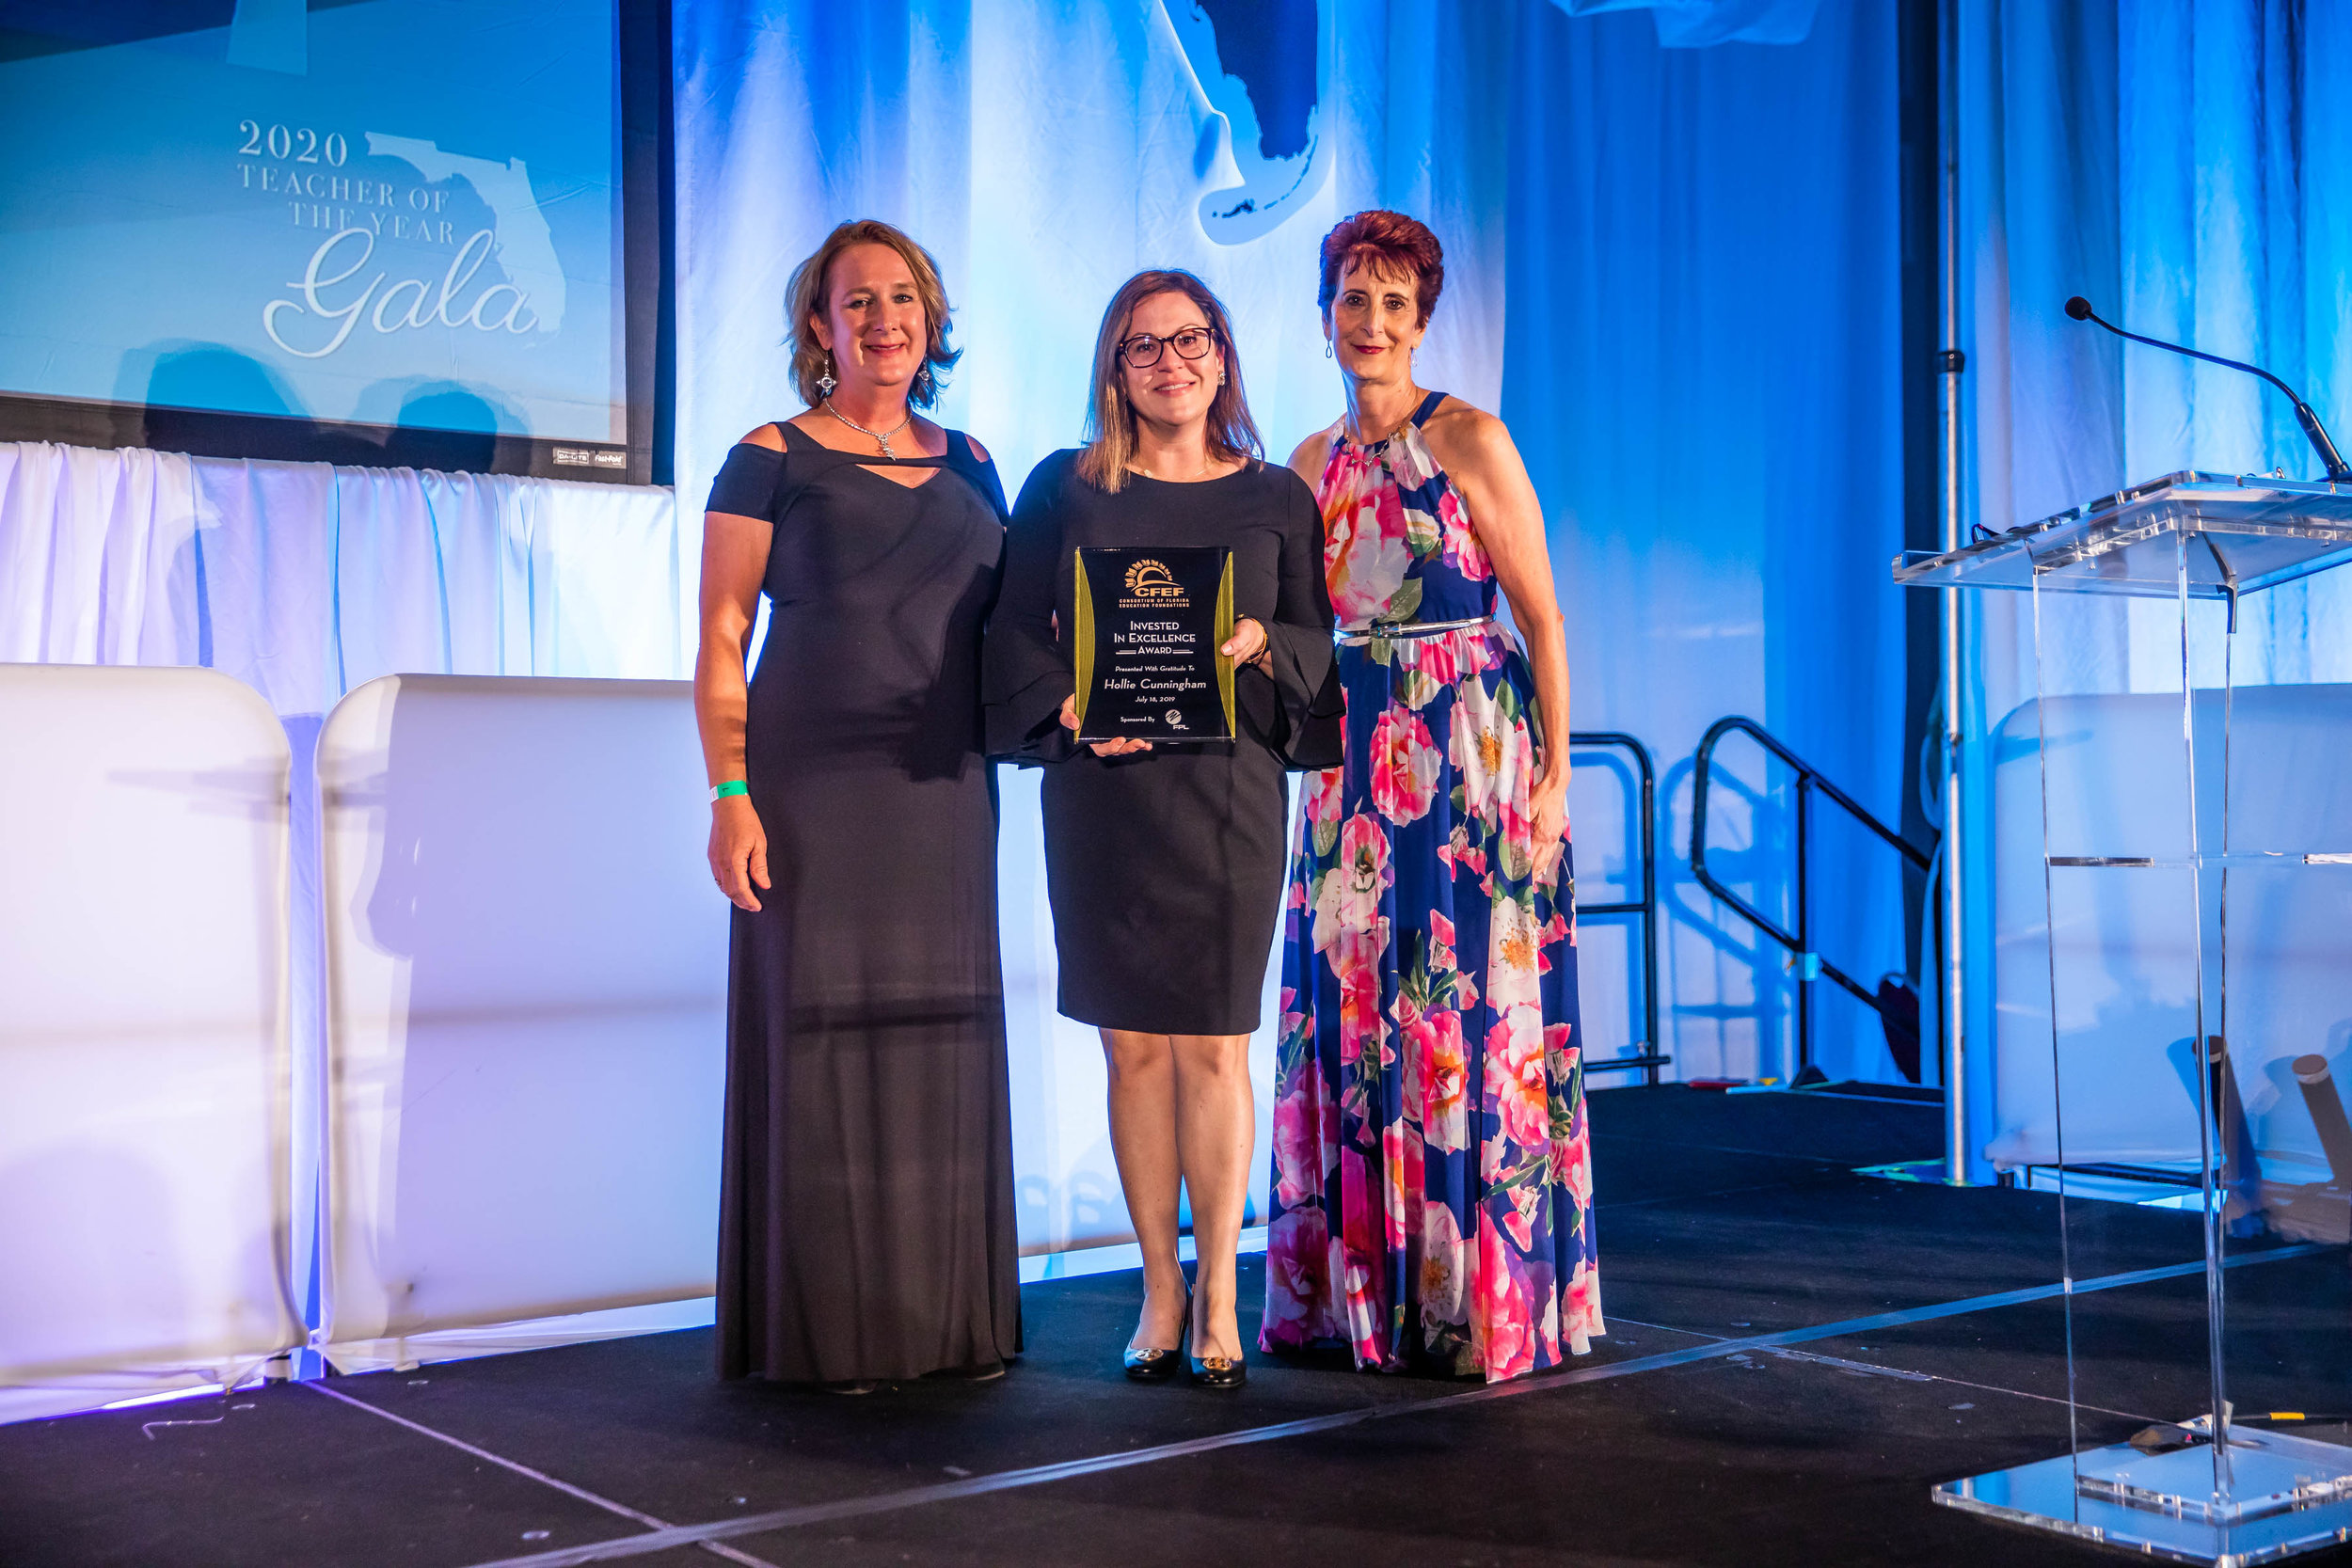 2019 CFEF INVESTED IN EXCELLENCE AWARD - HOLLIE MARIE CUNNINGHAM, MARION COUNTYPresented by Cynthia Falardeau, Executive Director for the Education Foundation of Indian River County, and Maureen Wilt, Senior Education Program Manager Florida Power & Light Company